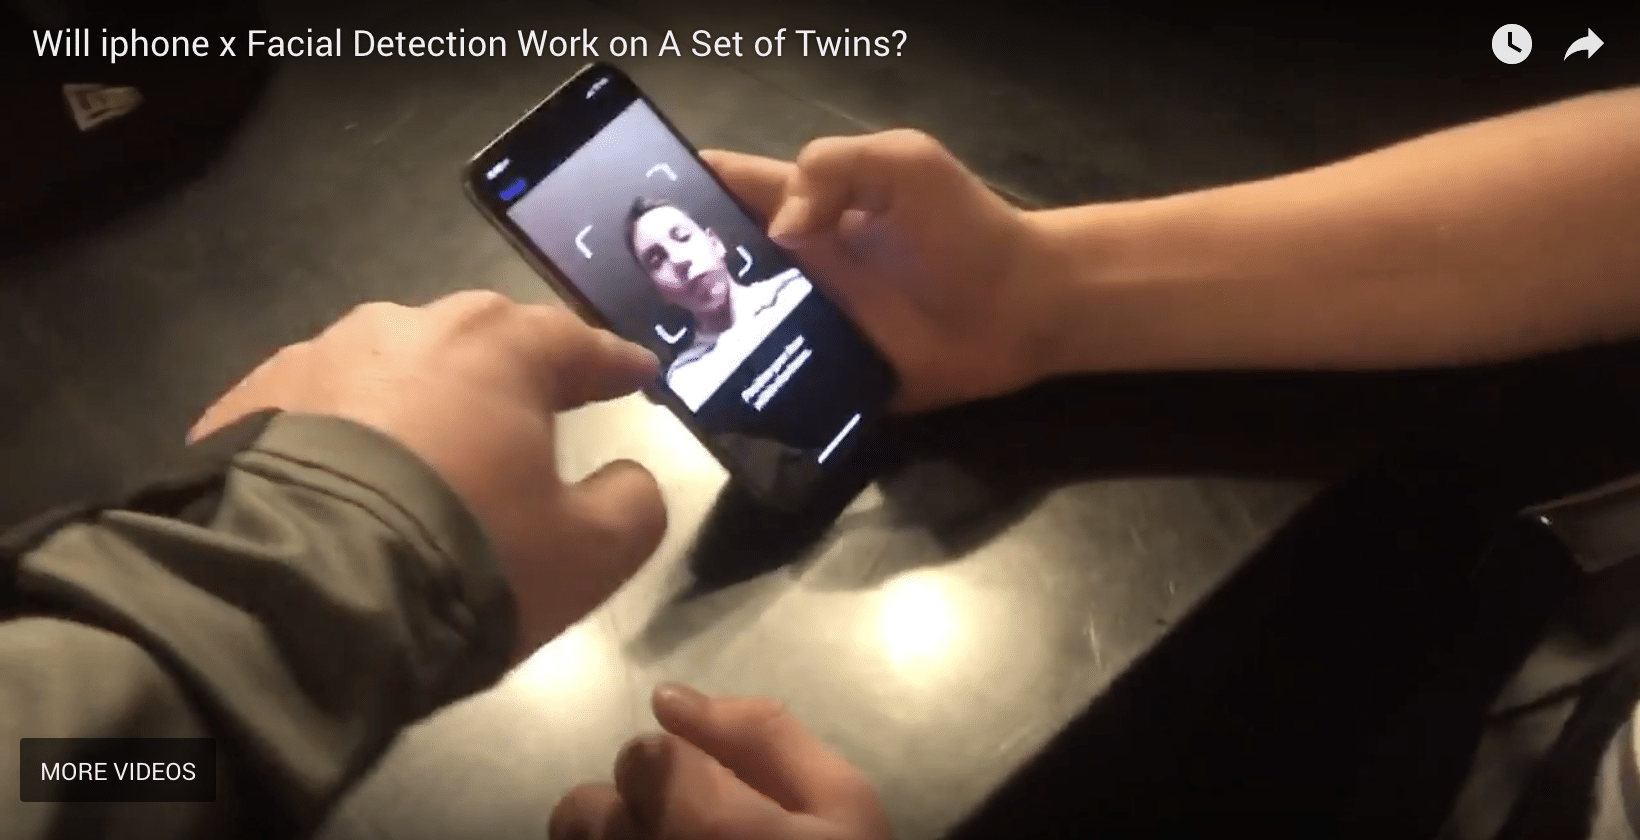 Does Facial Recognition on iPhone X 10 Work On Identical Twins